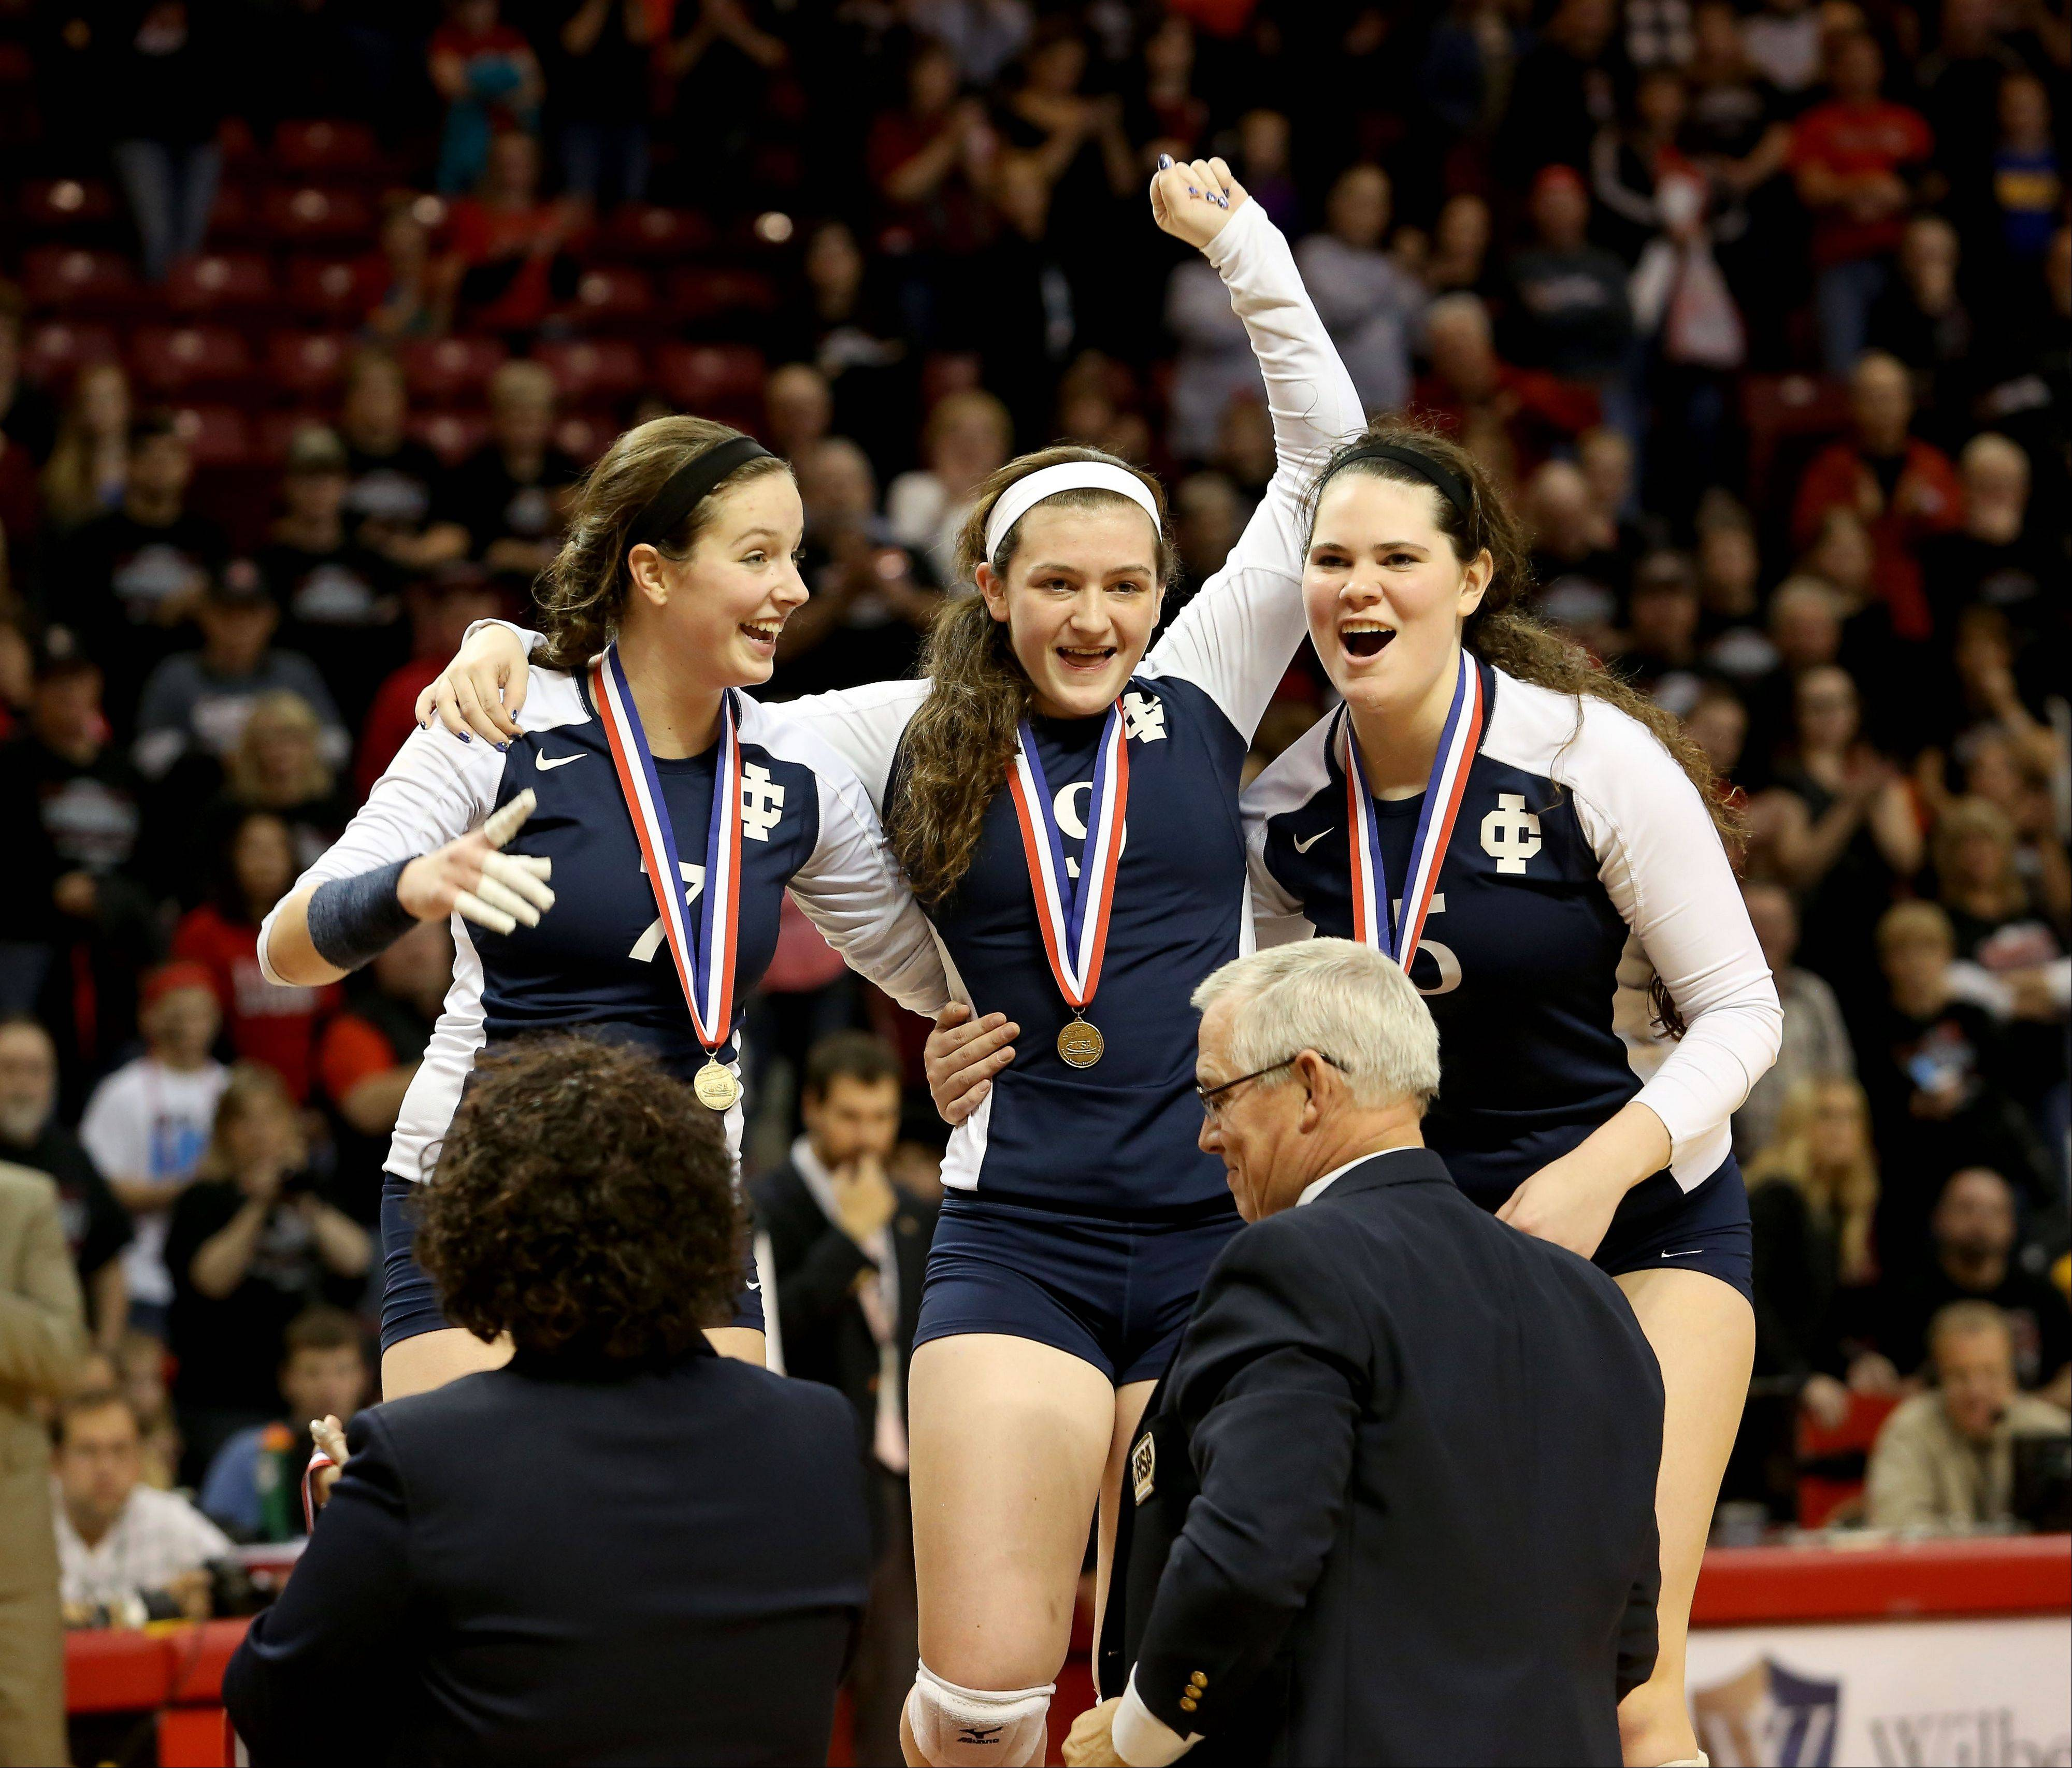 Delaney D'Amore, left and Rory Manion, right, help Frannie Cervone of IC Catholic up to get her medal after she was injured late in the second game against Edwards County in the Class 2A championship girls volleyball match on Saturday in Normal.